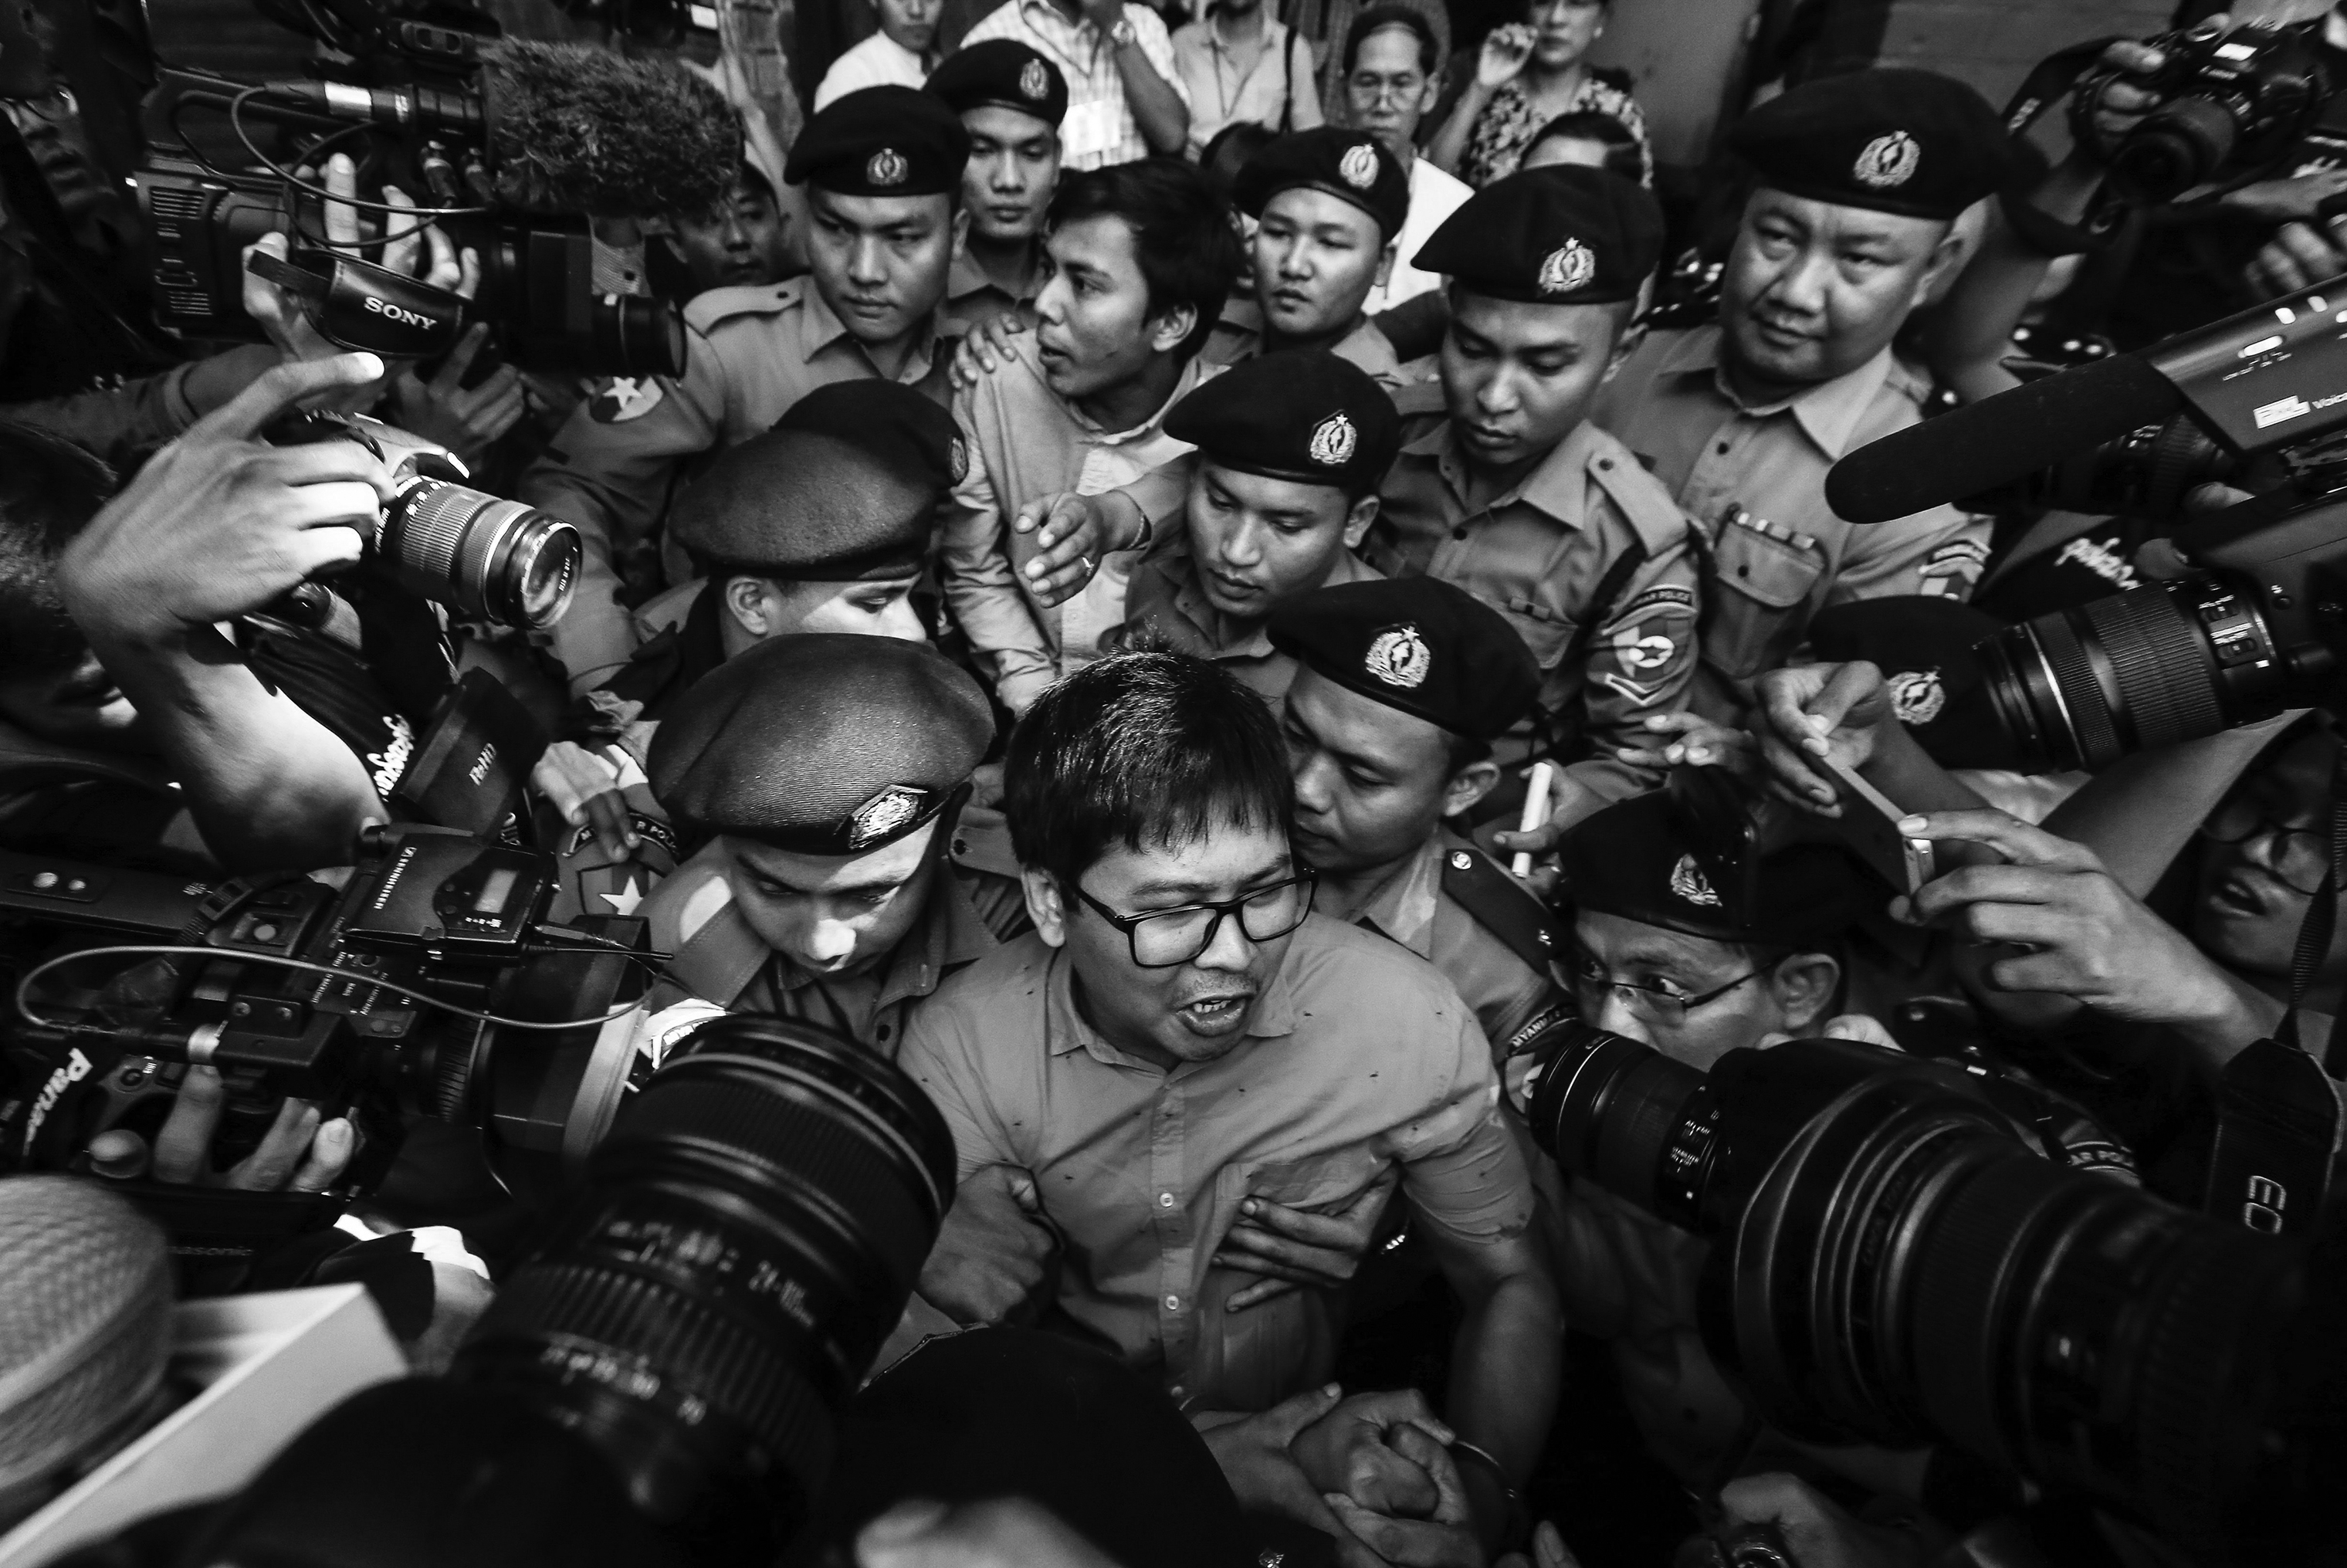 Reuters' journalists Wa Lone (C, front) and Kyaw Soe Oo (C, back) are escorted by police as they leave the court after their first trial in Yangon, Myanmar, 10 January 2018. Reuters journalists Wa Lone and Kyaw Soe Oo were arrested on the outskirts of Yangon city on 12 December 2017 by Myanmar police for allegedly possessing classified police documents. In September the journalists were convicted to seven years in prison.